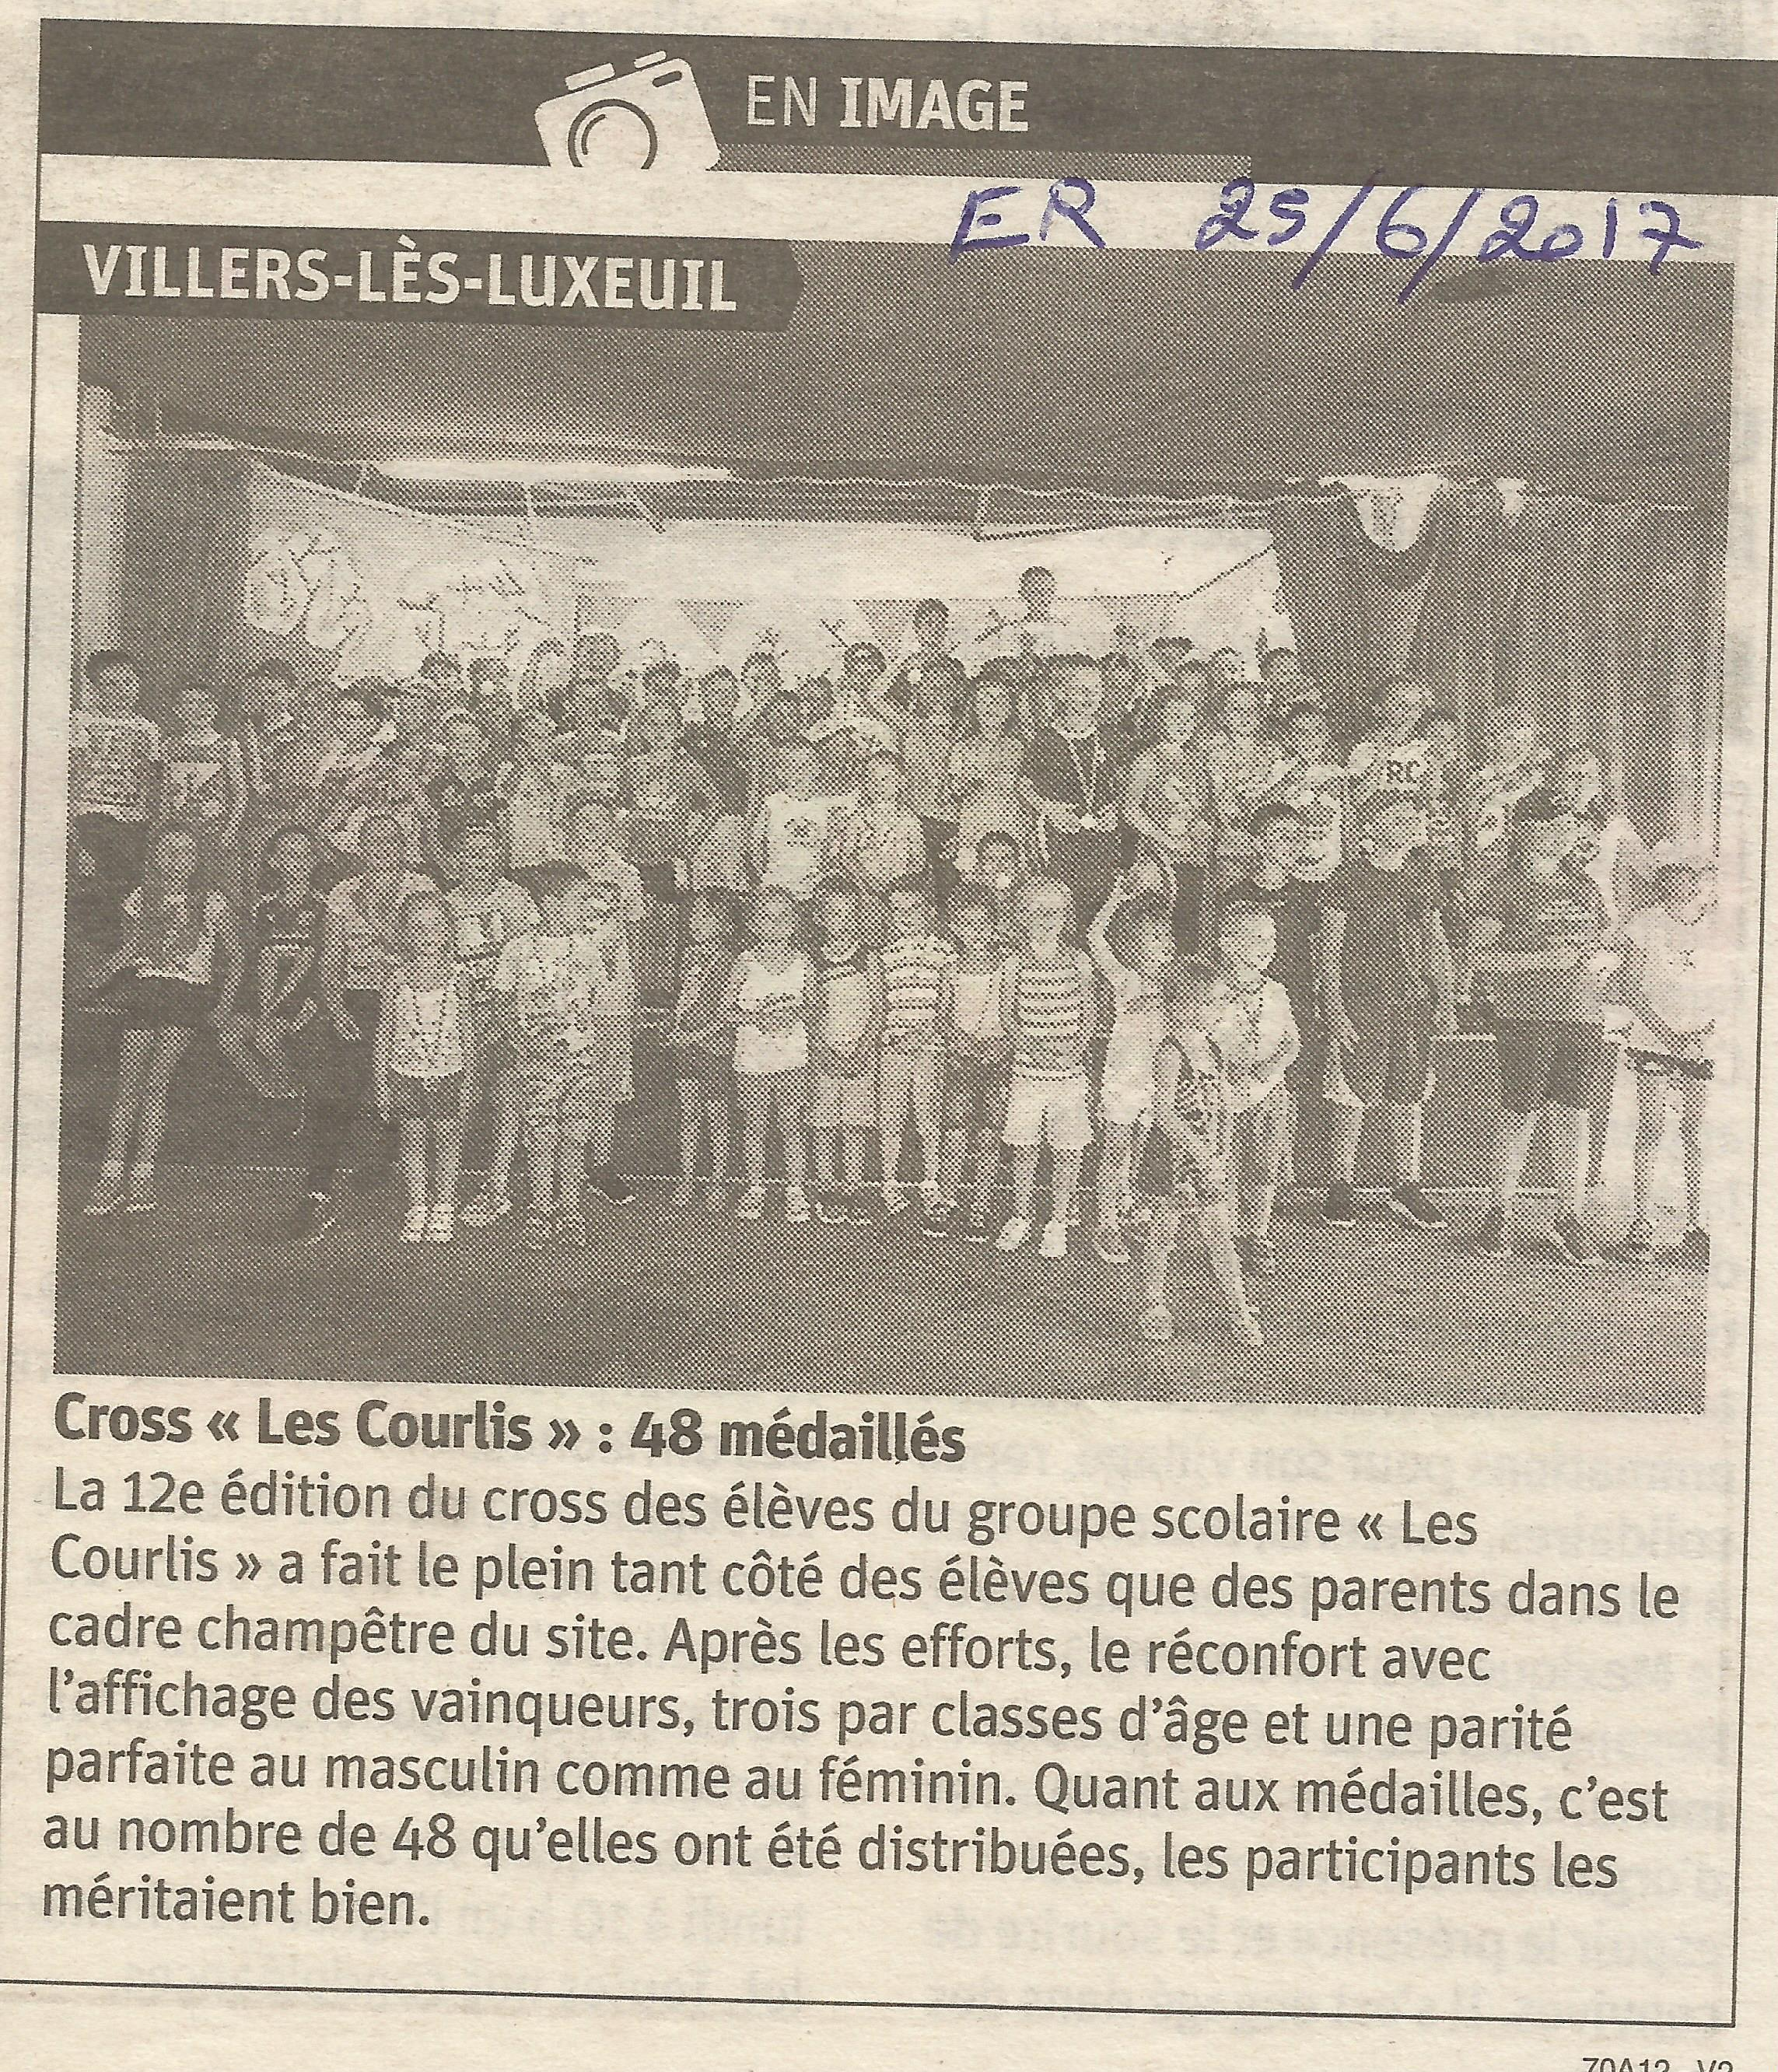 https://www.villers-les-luxeuil.com/projets/villers/files/images/2017_Mairie/Presse/2017_06_25.jpg